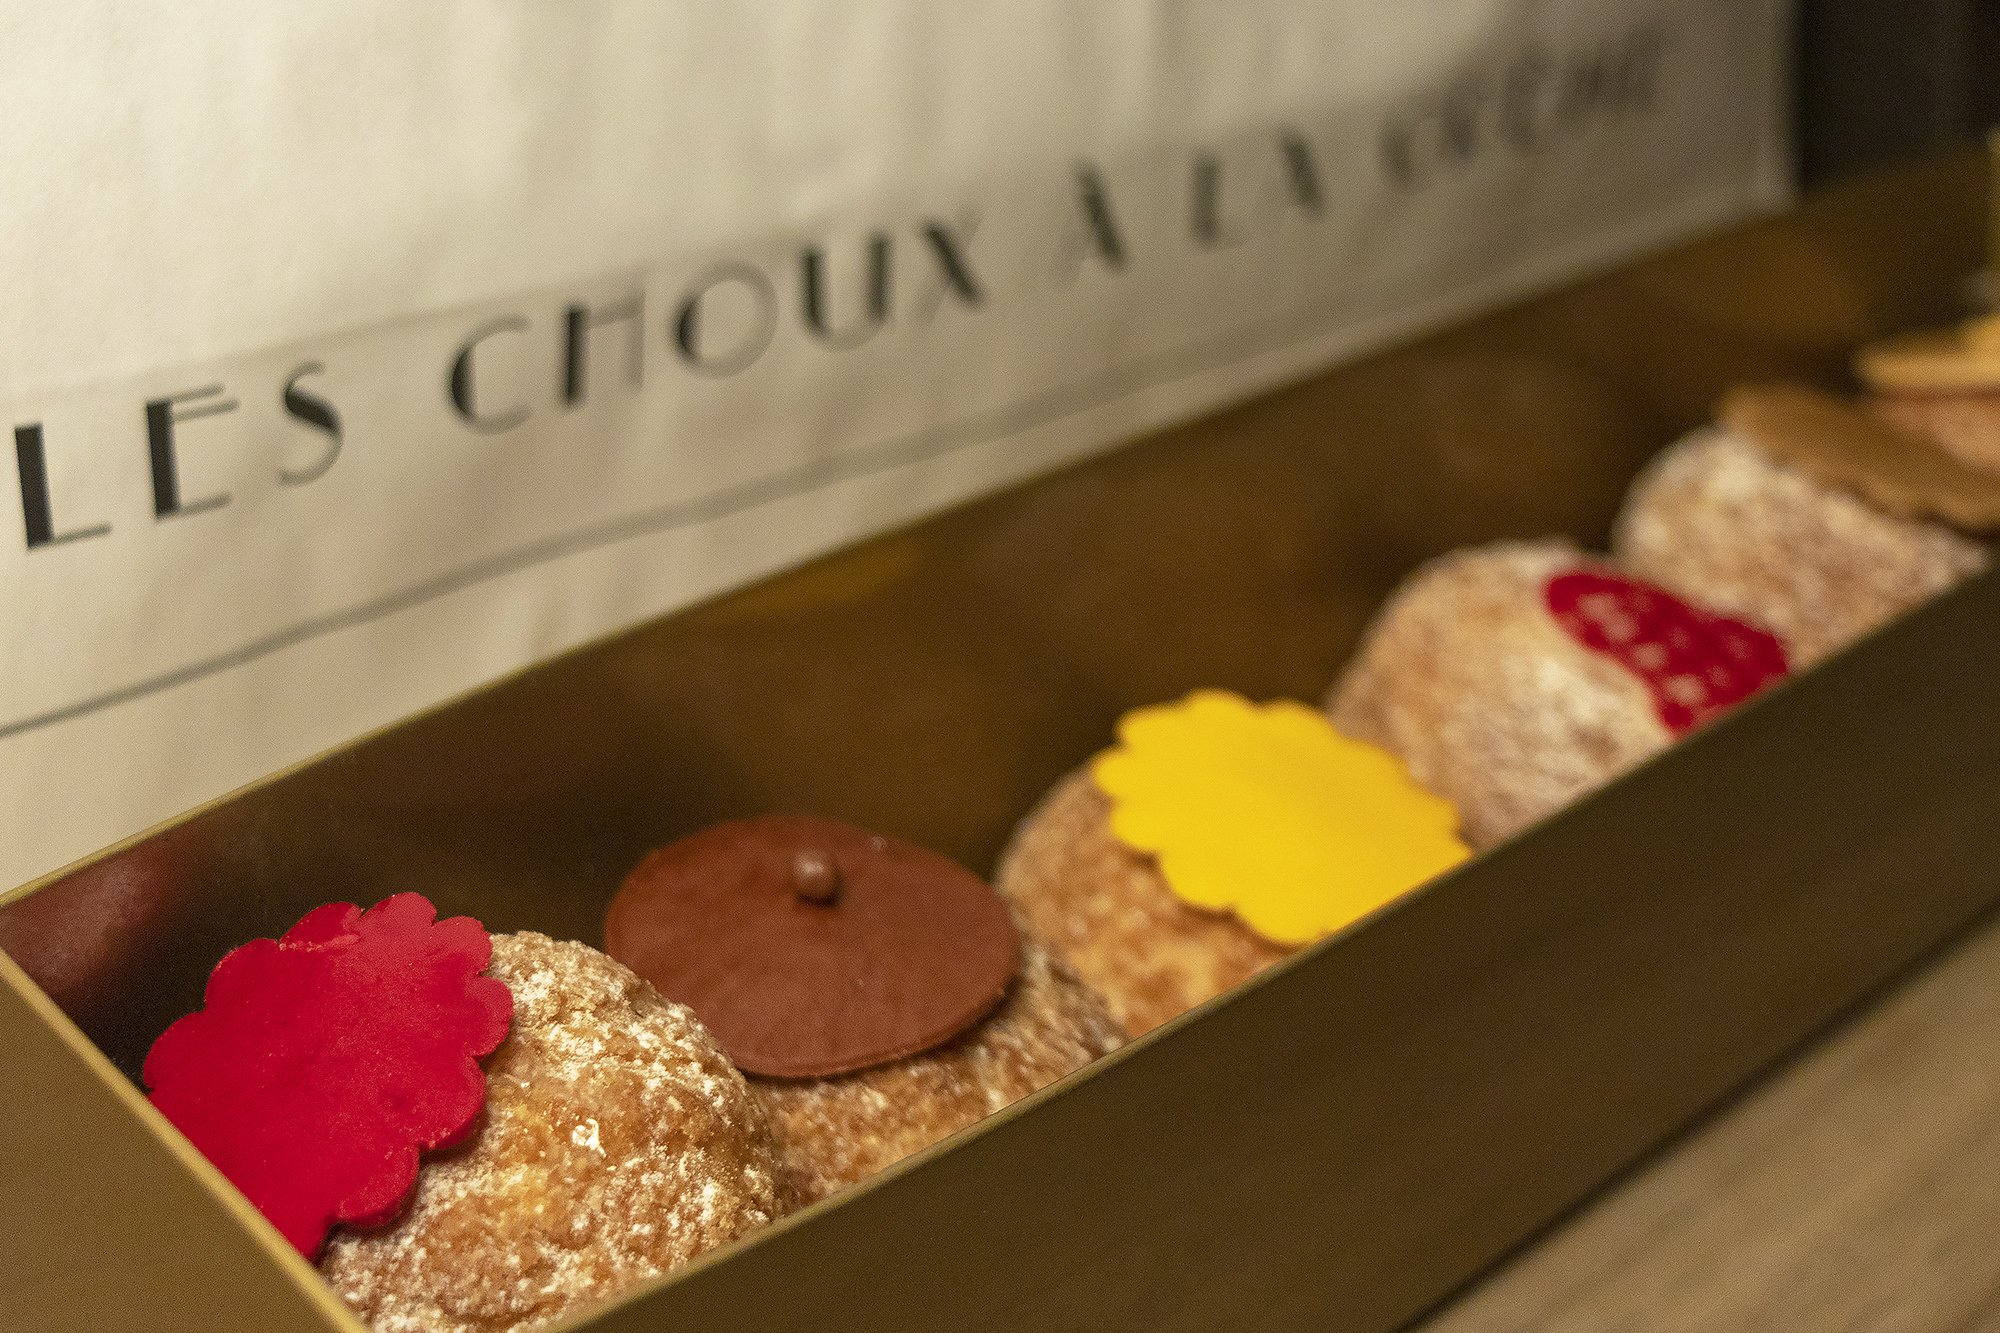 Choux a la creme from Odette, Paris